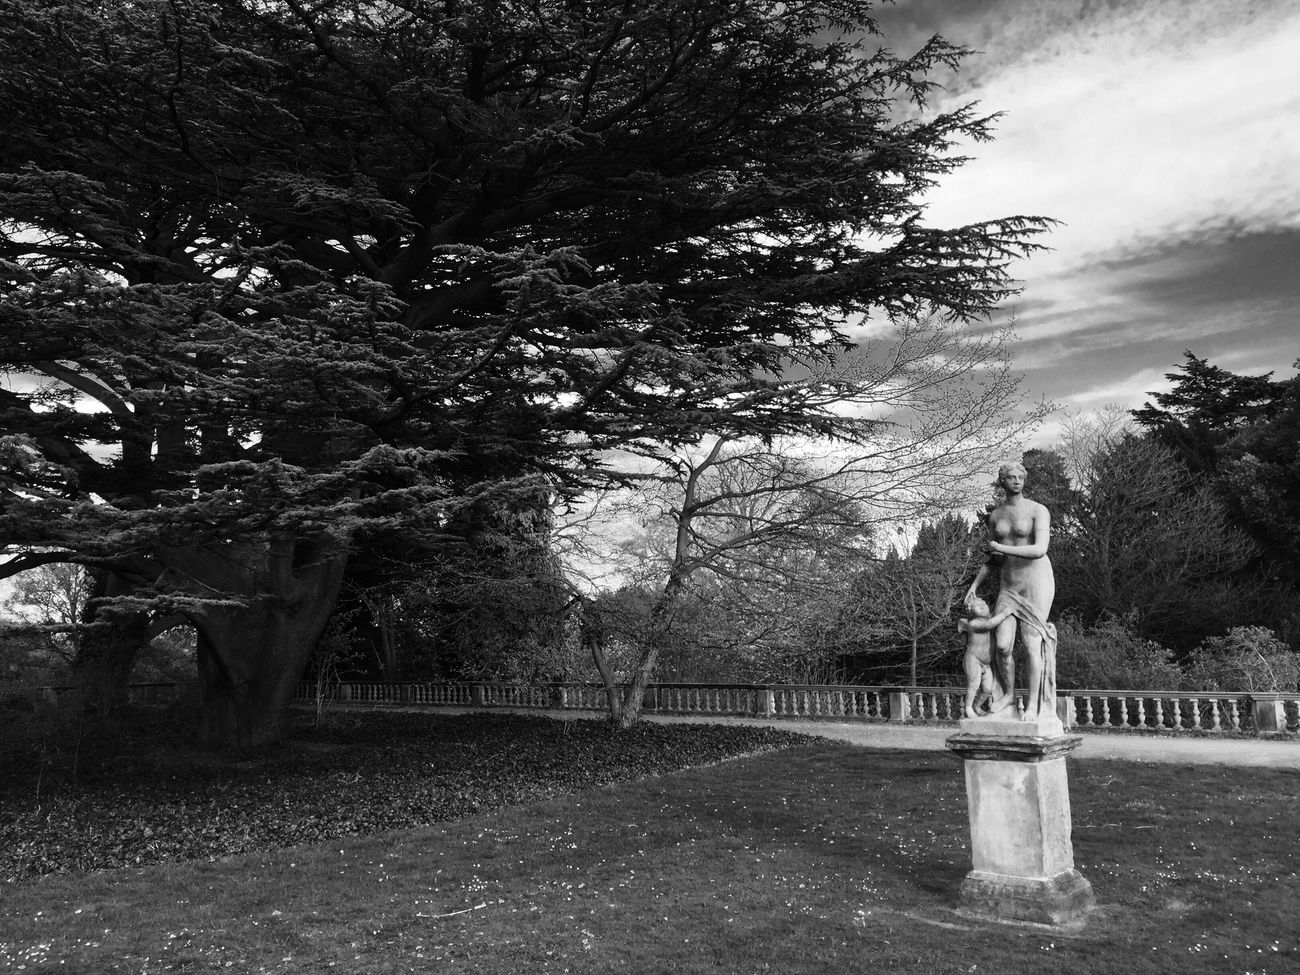 Wollaton Hall Garden Photography Landscape Sculpture Outdoors Tree Black And White Blackandwhite Photography ArtWork